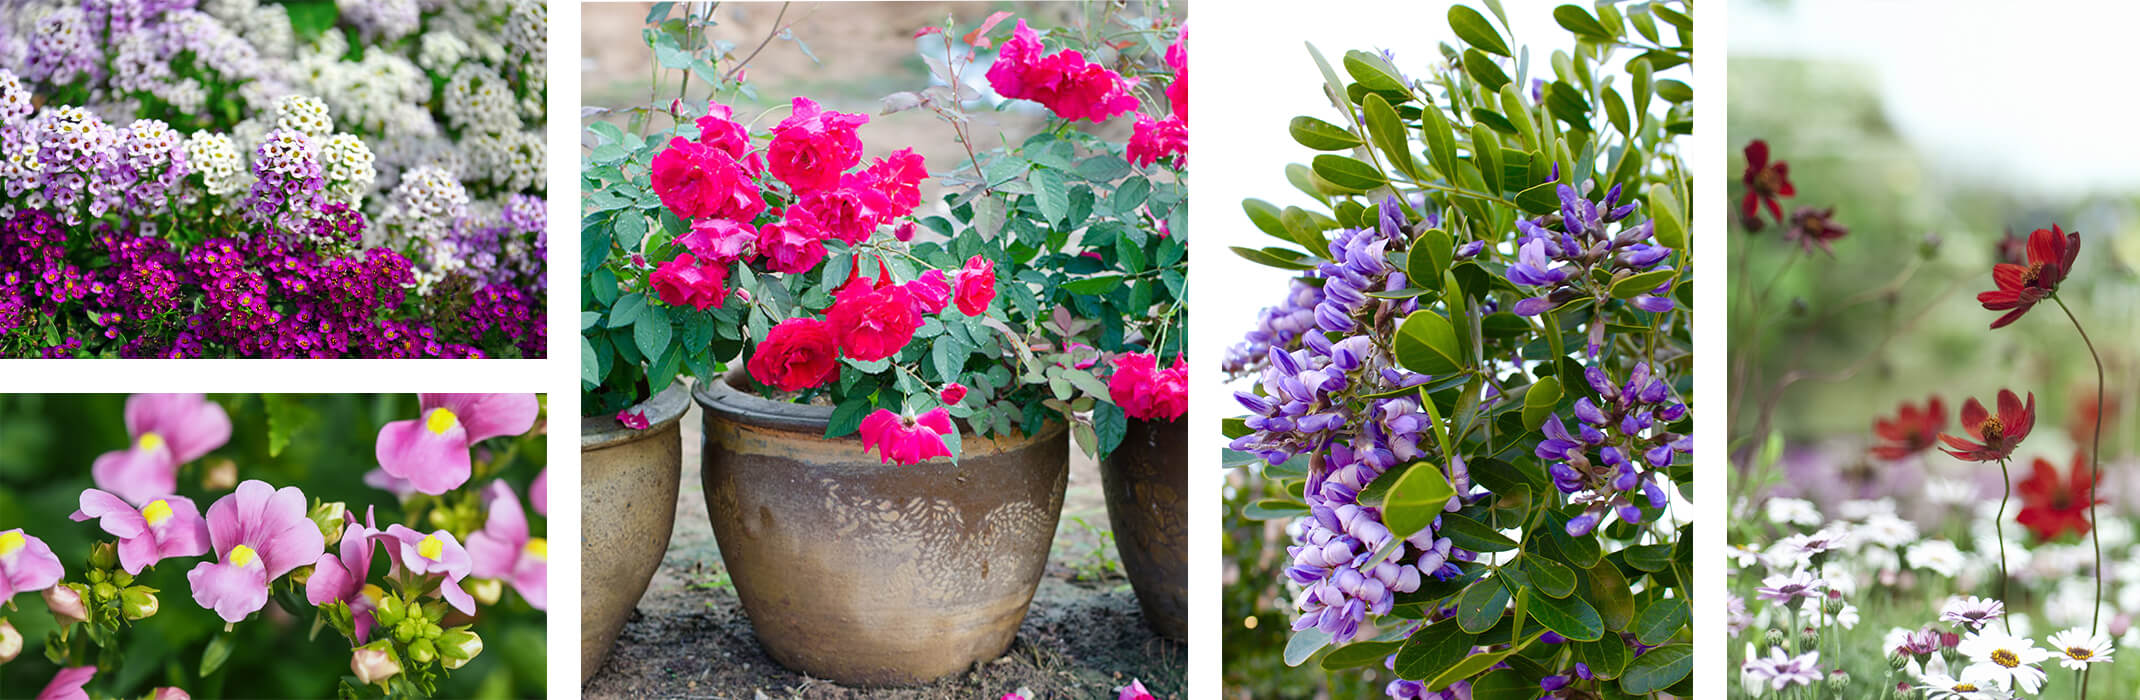 A collage of 5 images: purple, pink and white alyssum, purple nemesia, pink roses in a pot, Texas mountain laurel blooms, and chocolate cosmos in field with white daisies in background